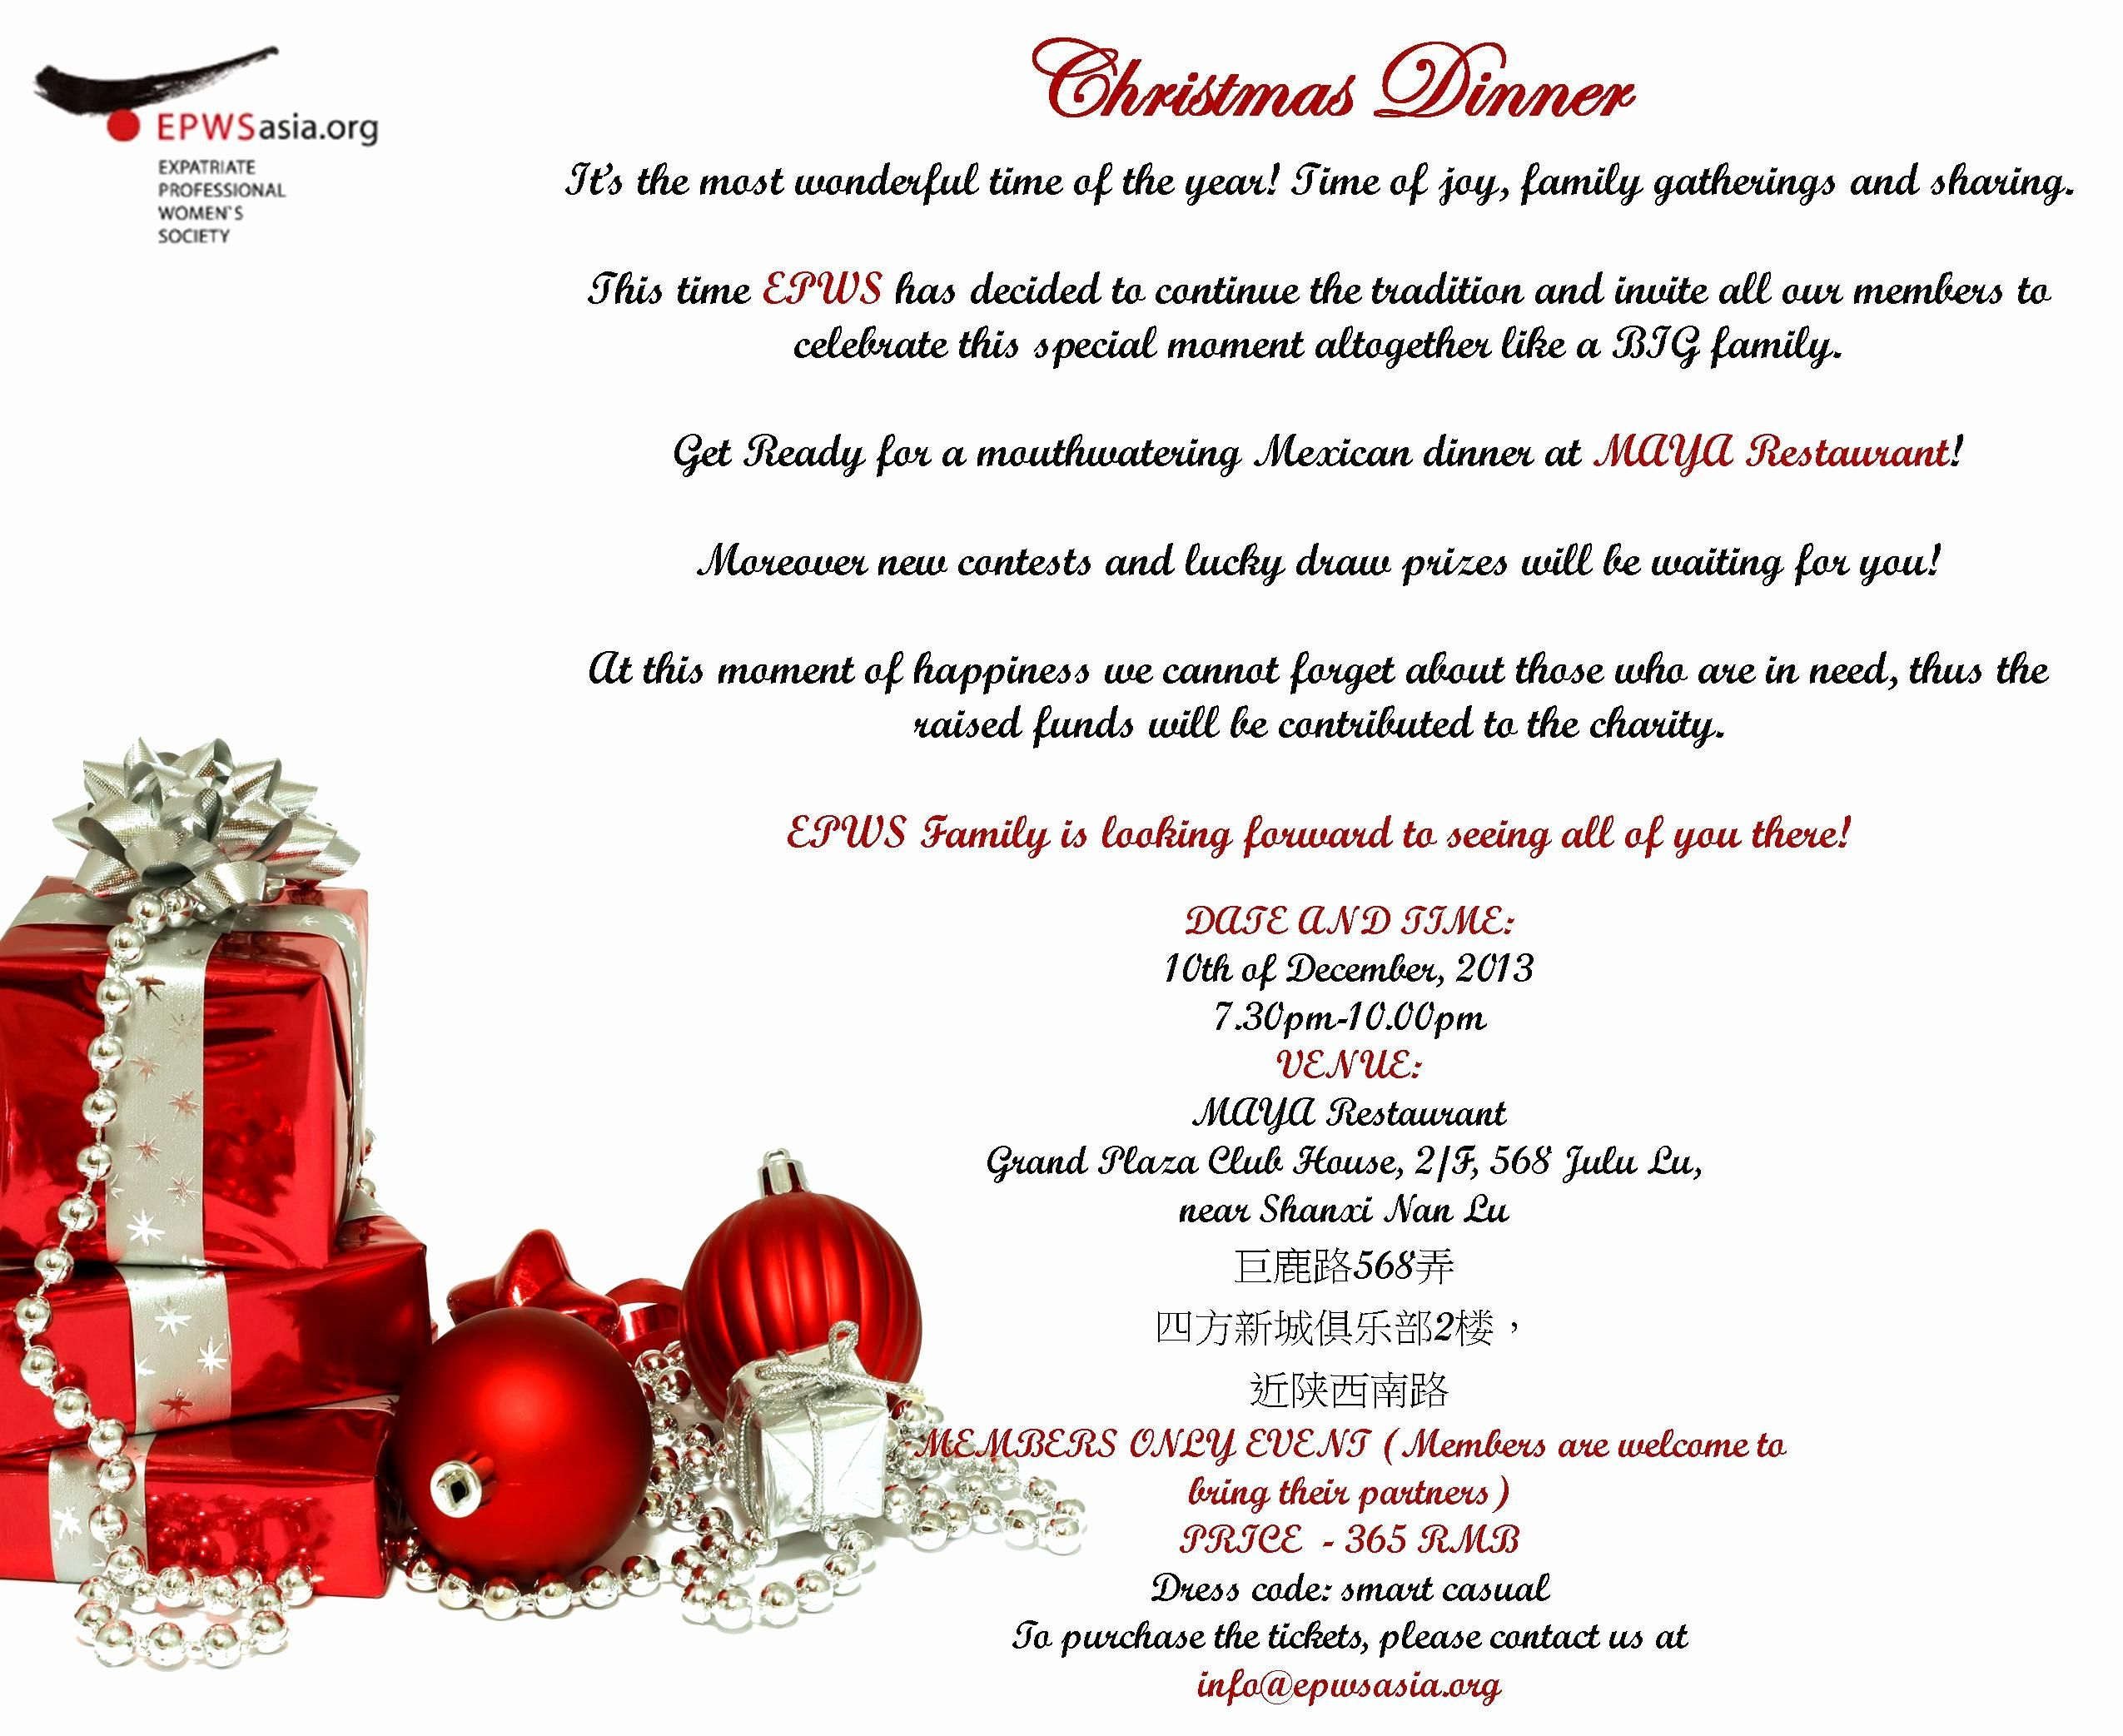 Birthday Invitation Email Template Awesome Event Invitation Holiday Invitation Car Christmas Dinner Invitation Xmas Party Invitations Bowling Party Invitations